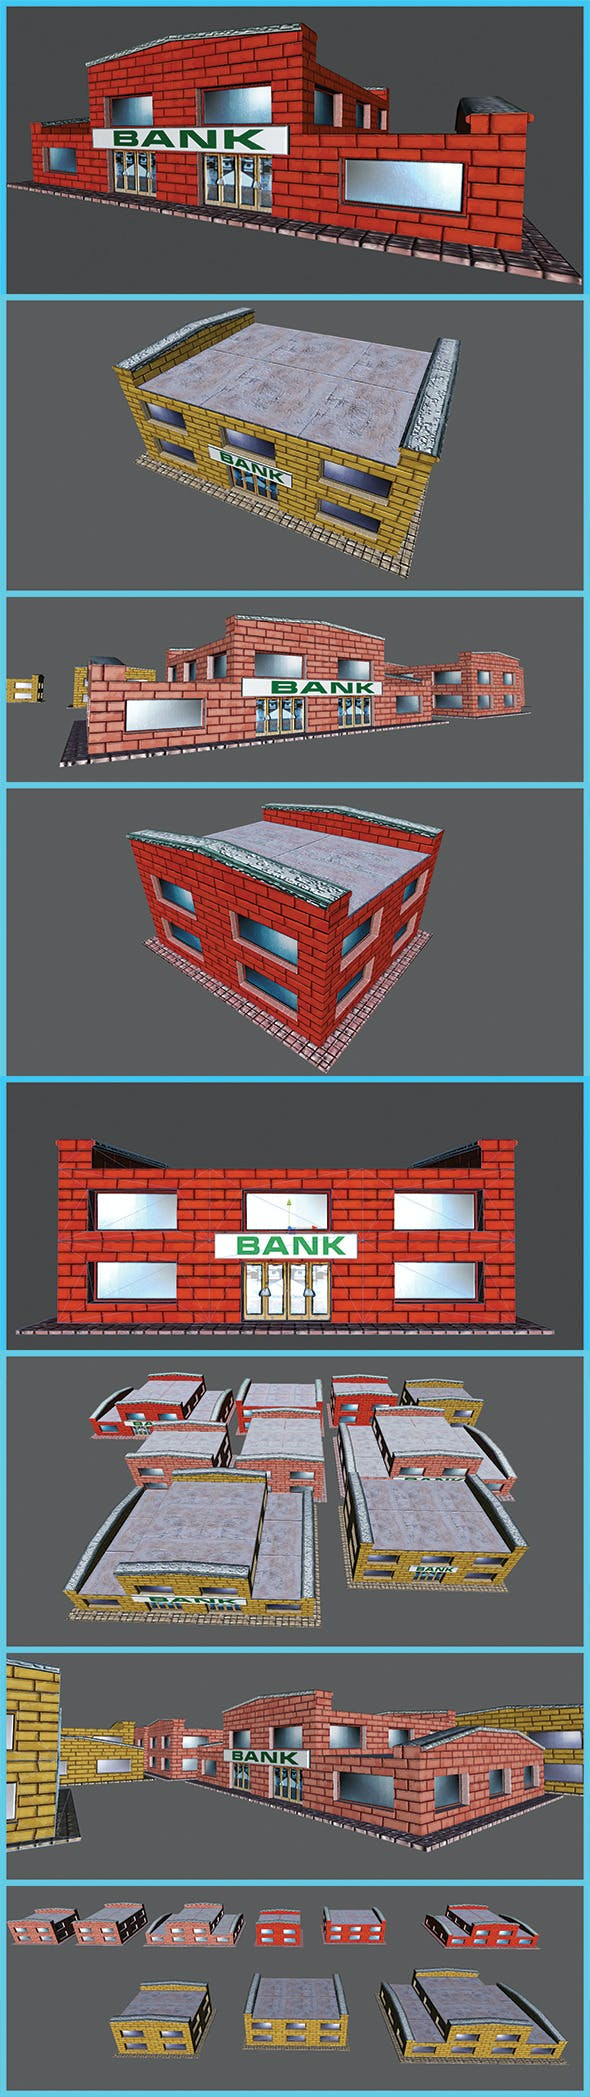 Toon Textured Small Bank Building - 3DOcean Item for Sale